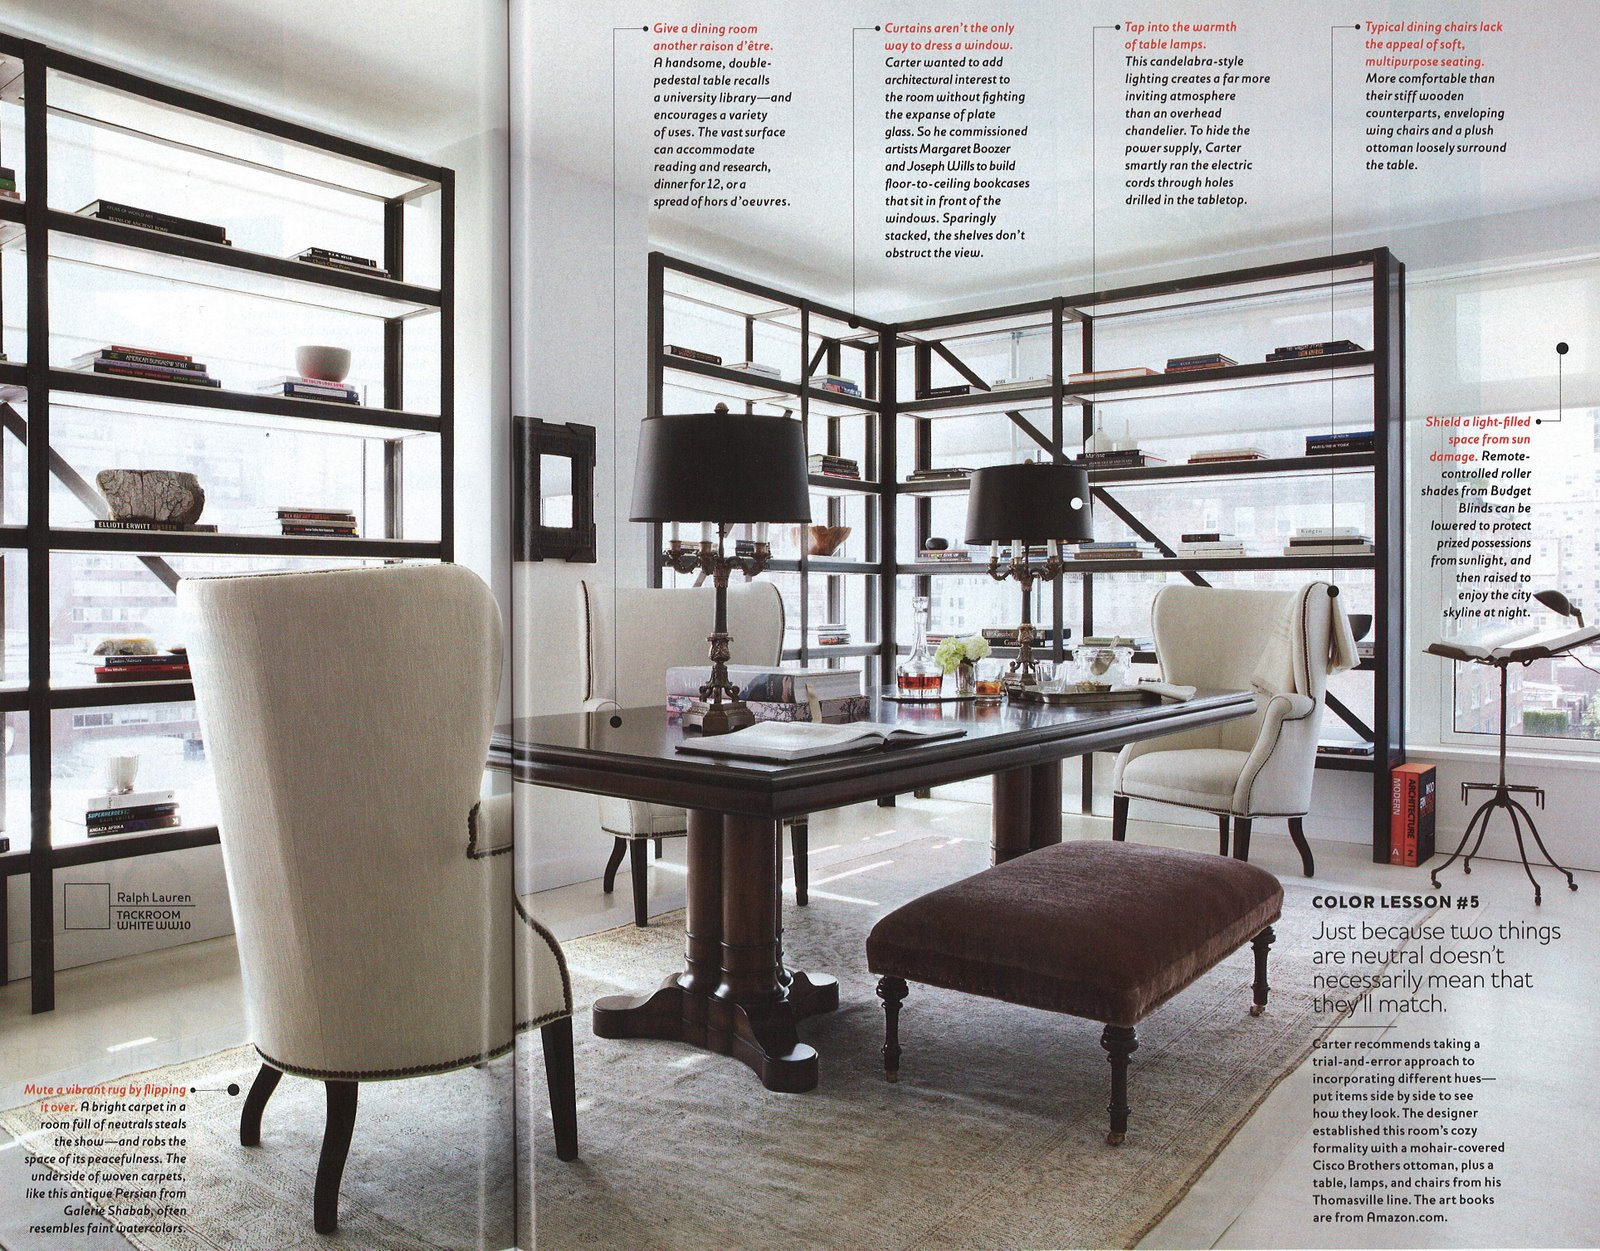 Luxury Design by Darryl Carter as featured in O at Home